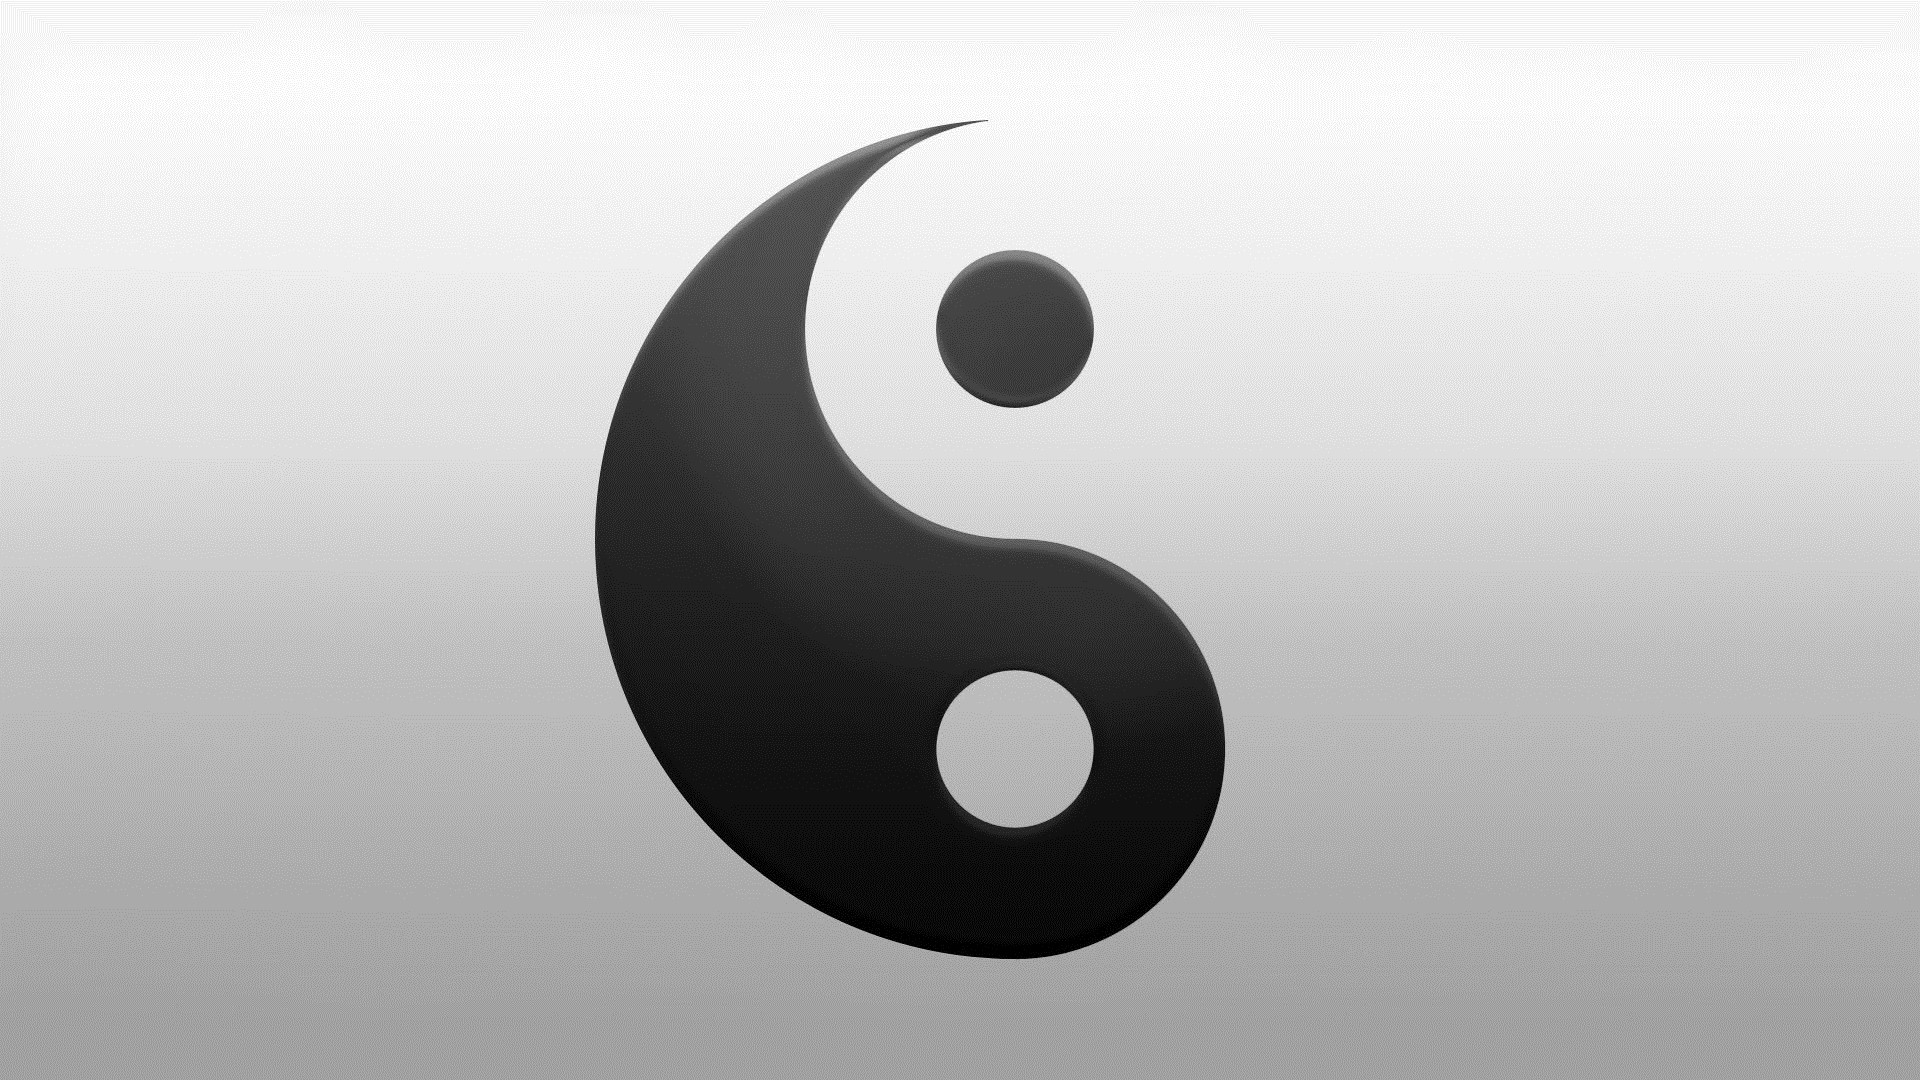 Yin Yang Wallpaper for pc